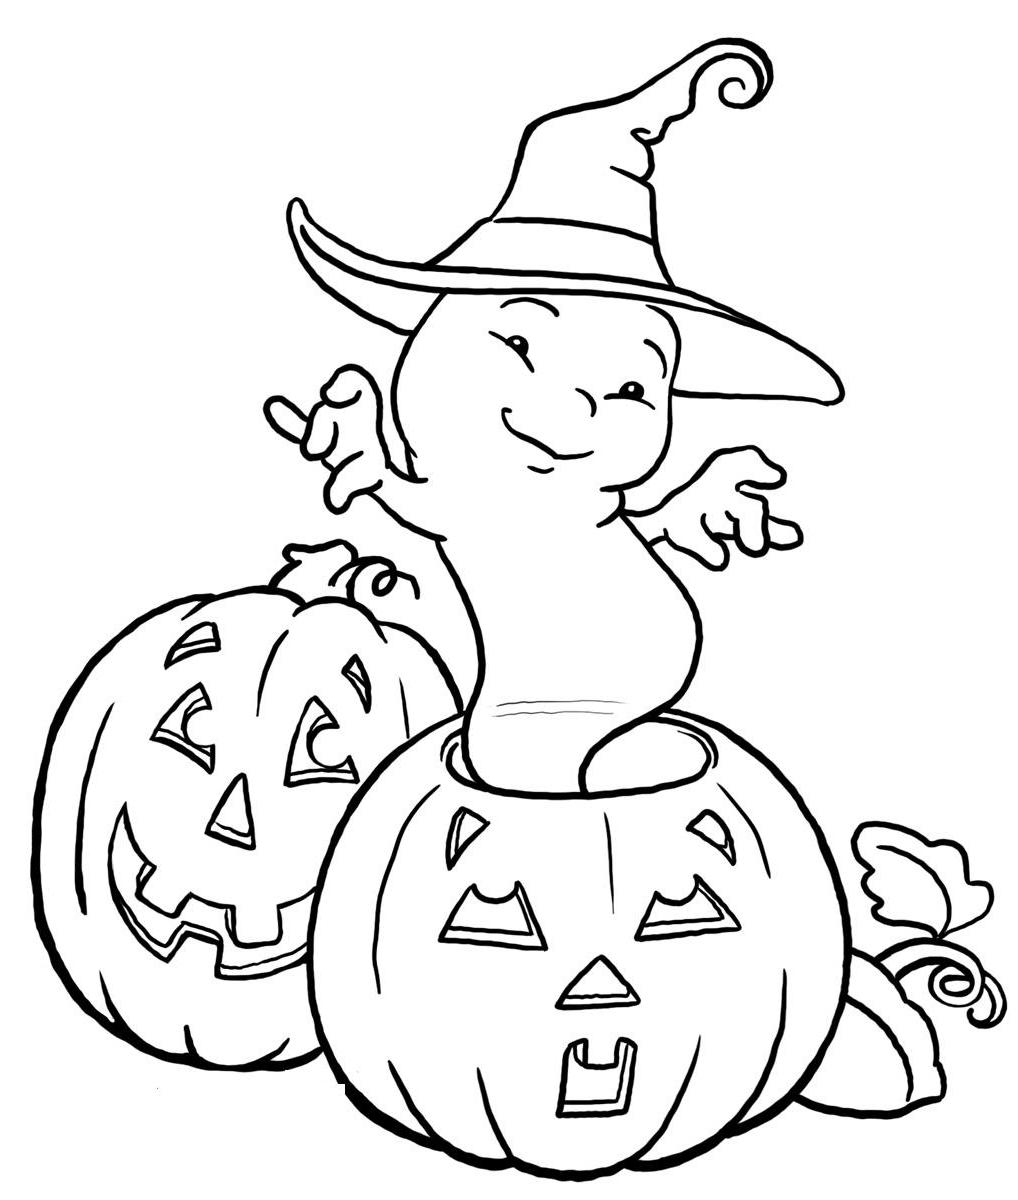 Halloween Pumpkin Coloring Pages Printables Halloween Ghost And Pumpkin Coloring Pages Kids Hallowen Coloring